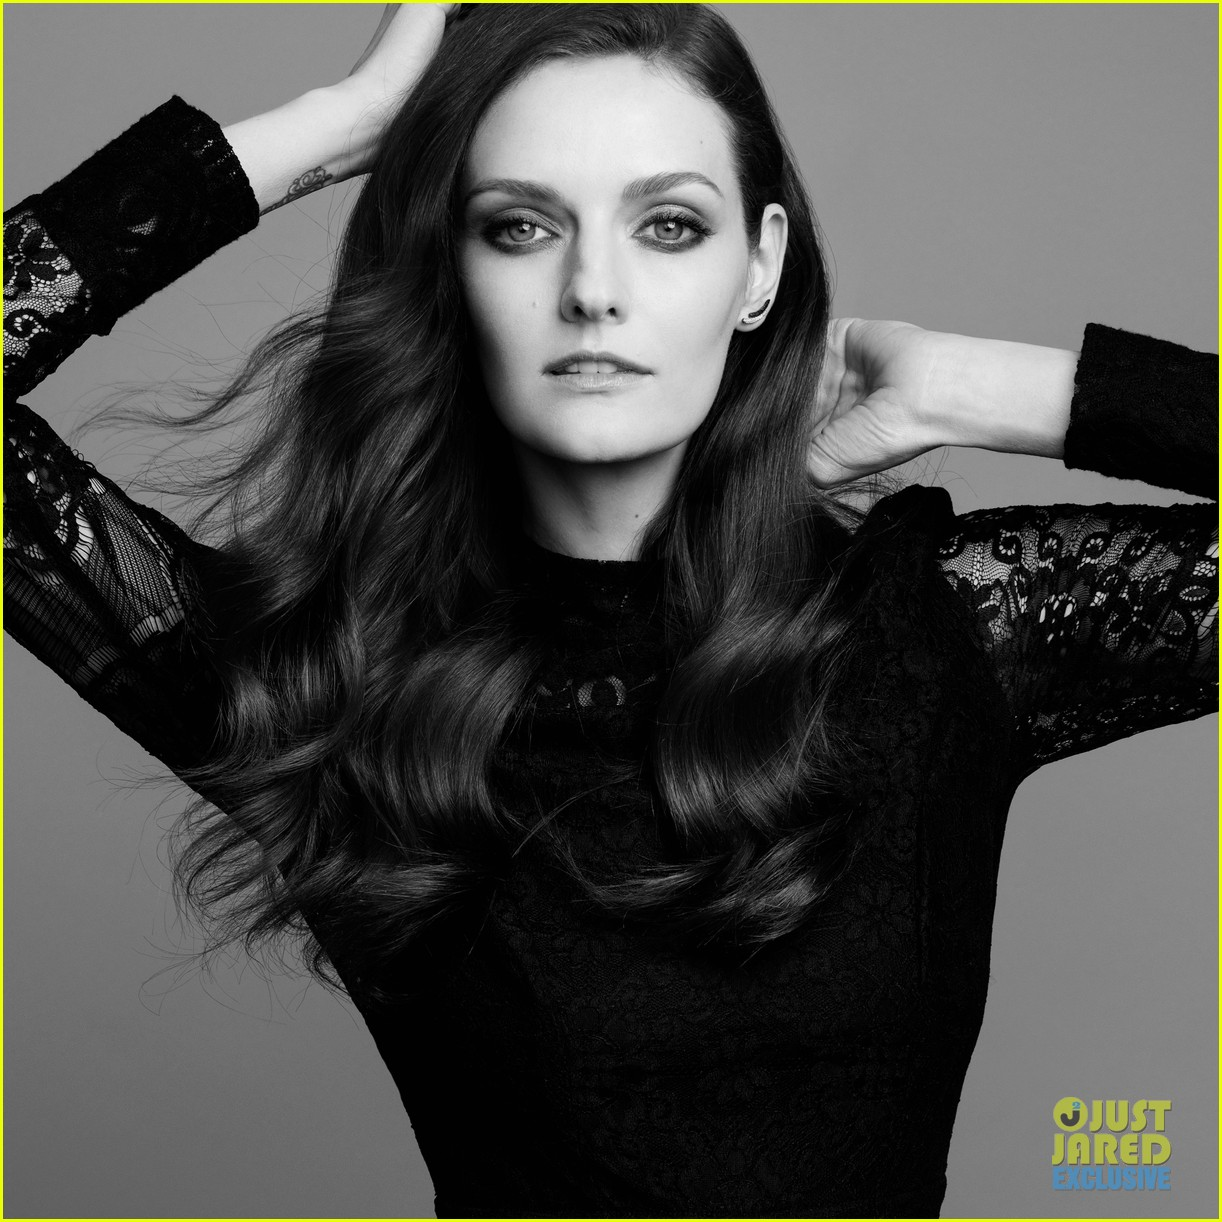 lydia hearst tyler shieldslydia hearst tyler shields, lydia hearst wedding, lydia hearst 2016, lydia hearst benedict cumberbatch, lydia hearst height, lydia hearst vogue, lydia hearst husband, lydia hearst listal, lydia hearst instagram, lydia hearst, lydia hearst net worth, lydia hearst blog, lydia hearst twitter, lydia hearst gossip girl, lydia hearst boyfriend, lydia hearst tumblr, lydia hearst family, lydia hearst bellazon, lydia hearst esquire, lydia hearst chris hardwick